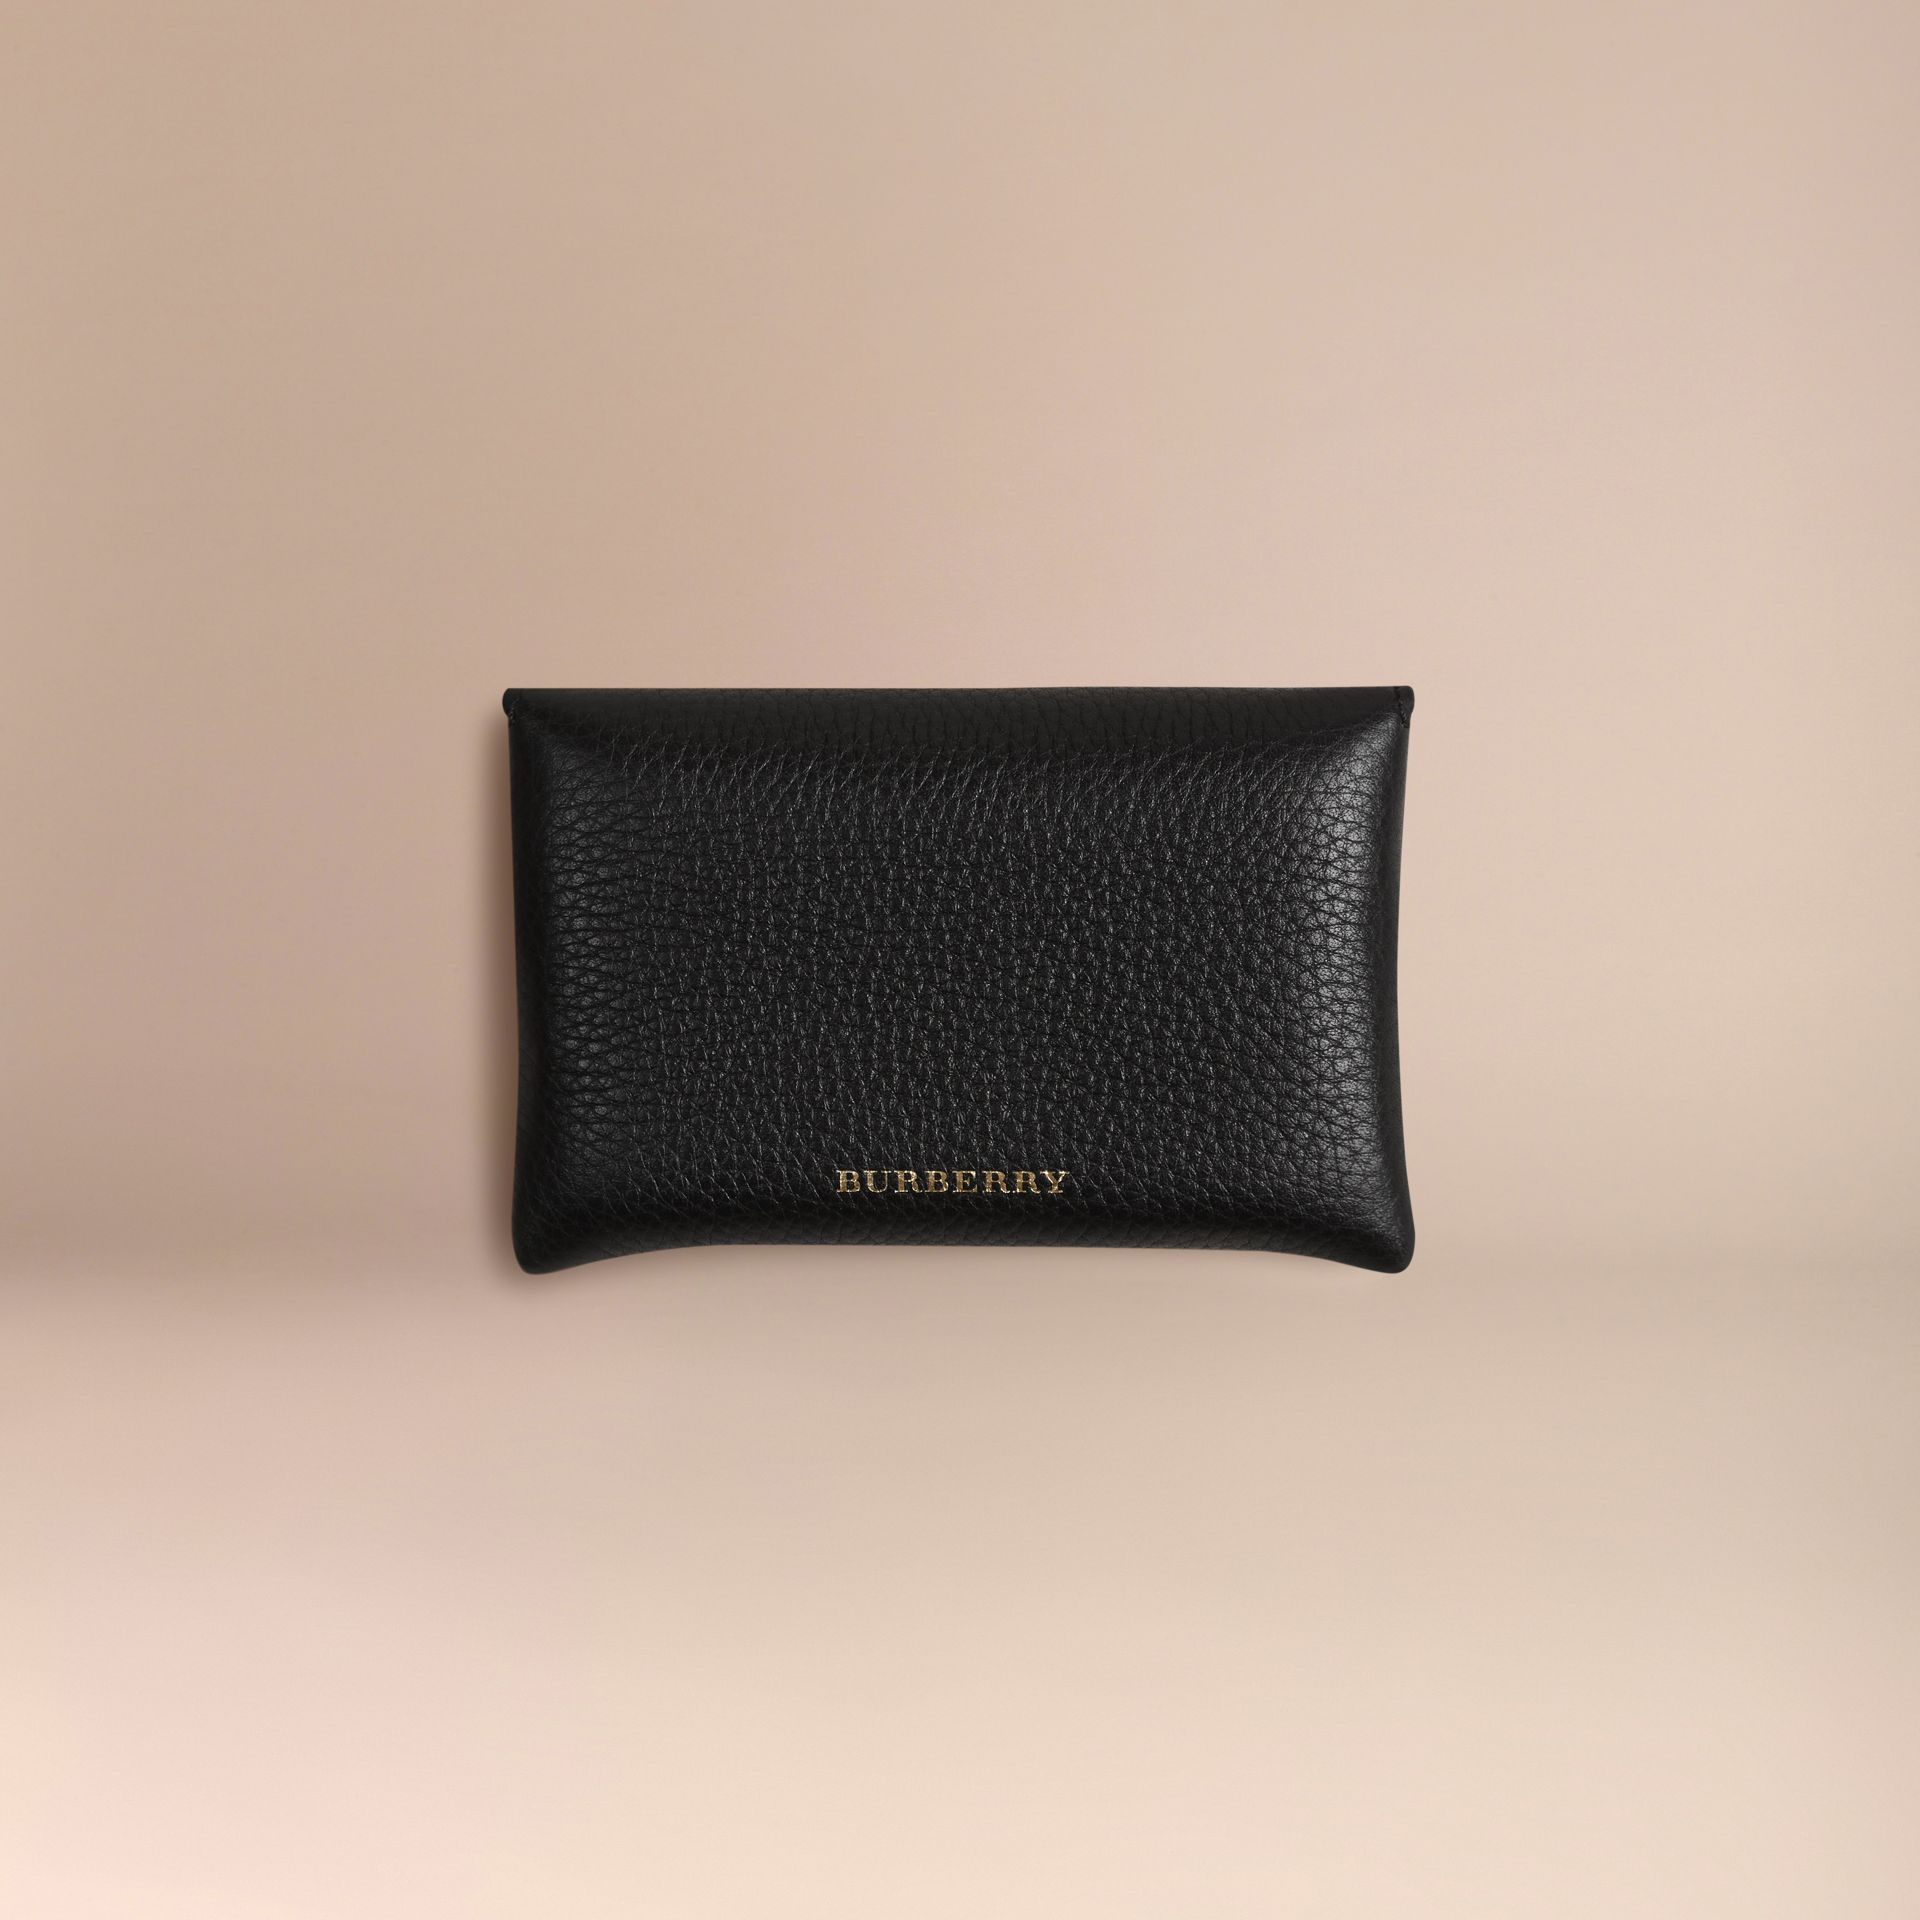 Grainy Leather Playing Card Case in Black | Burberry - gallery image 4